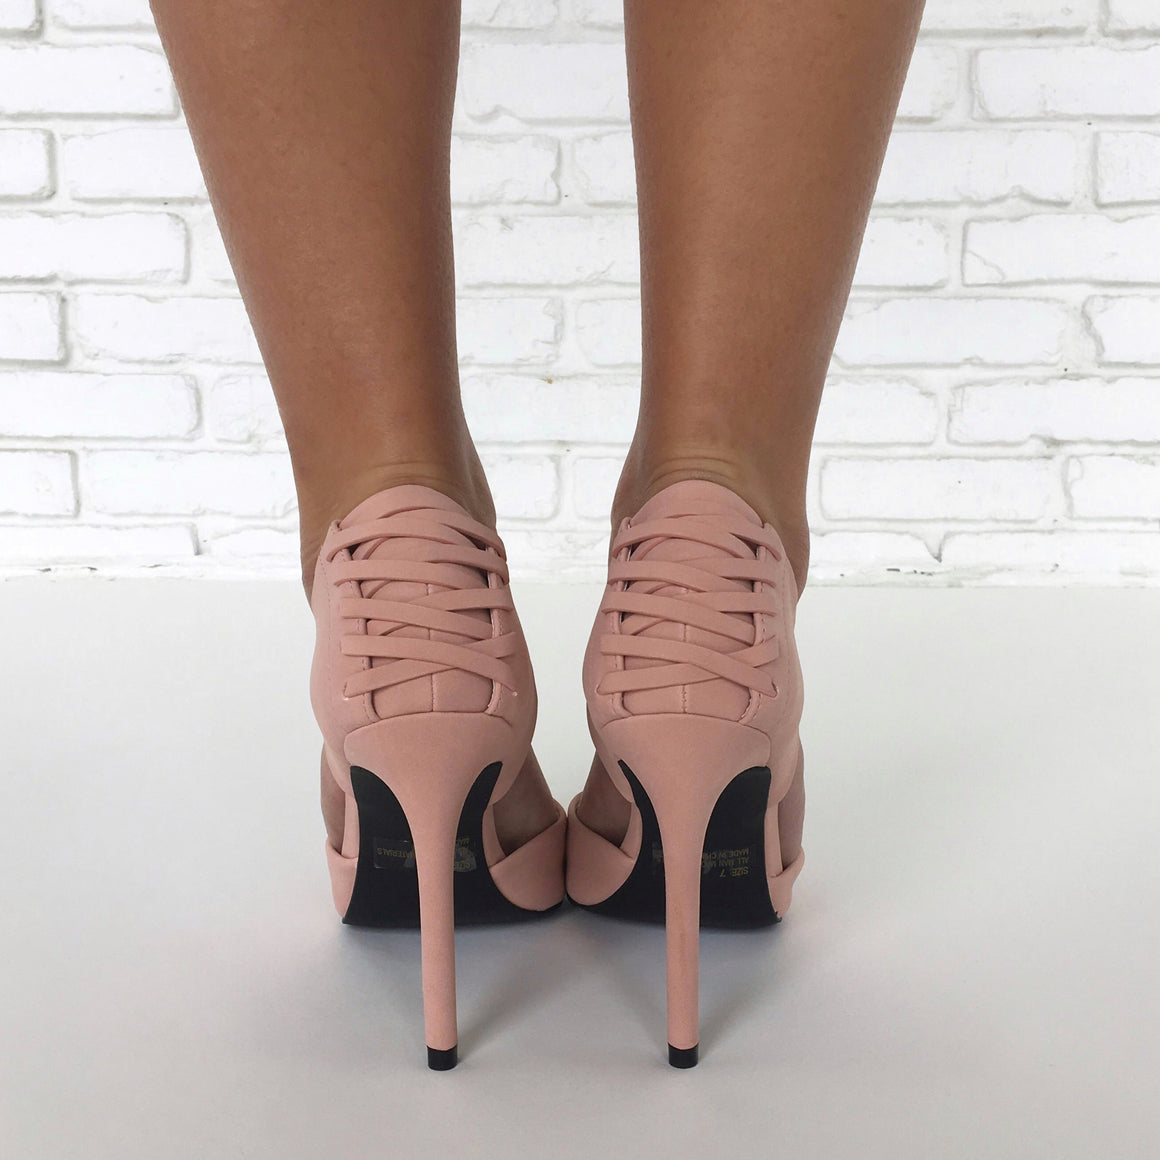 She's The Boss Heels in Blush Pink